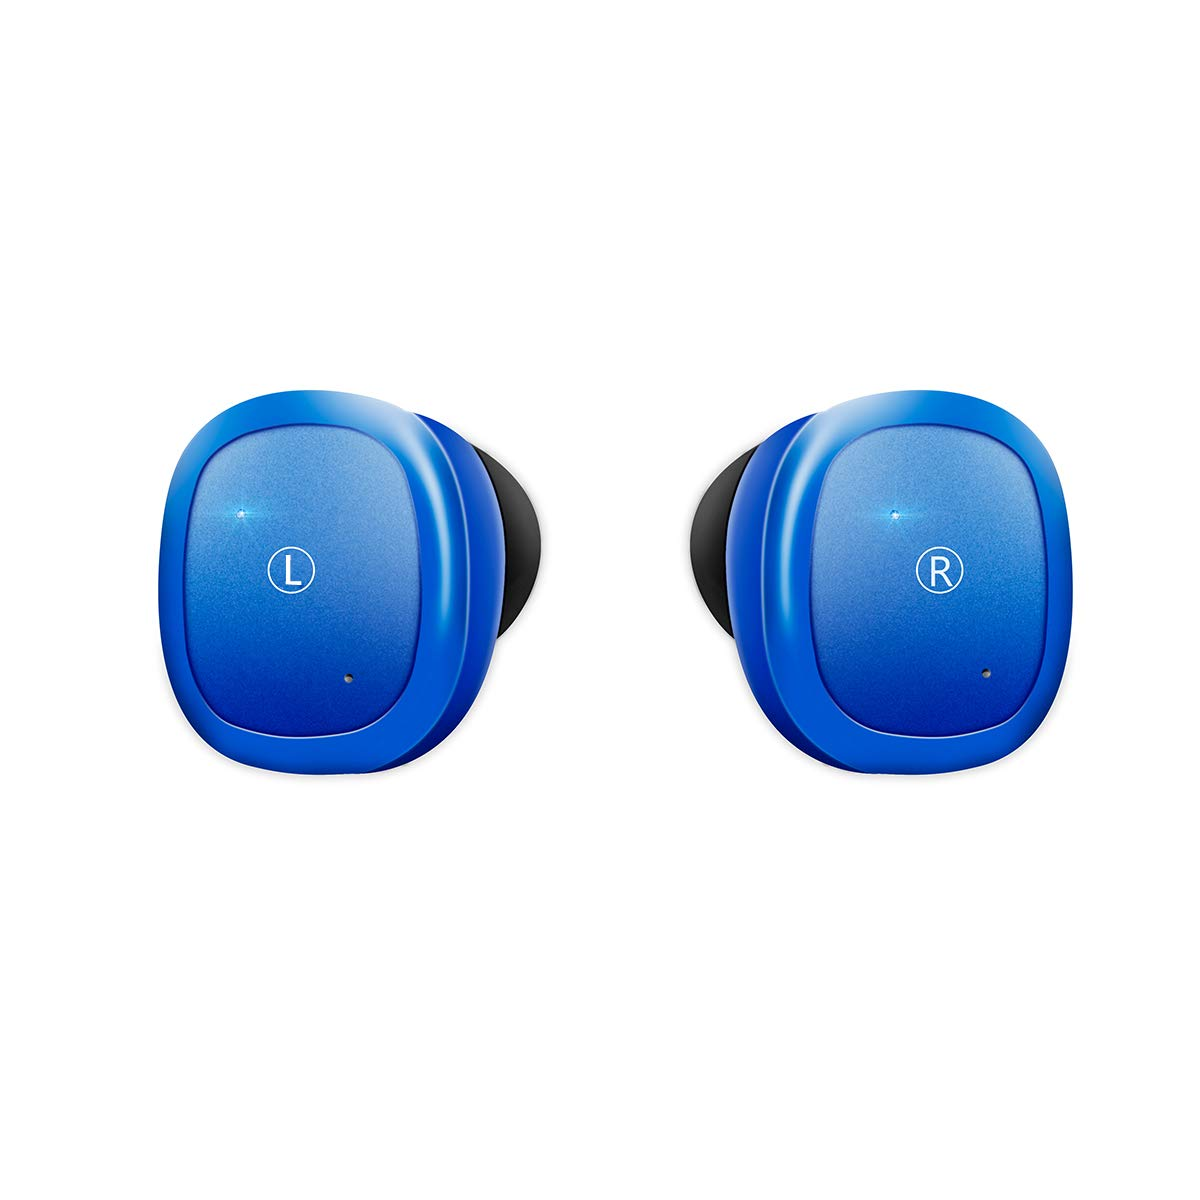 Elecder D8 True Wireless Earbuds Bluetooth 5.0 in Ear with Microphone, Charging Case, IPX5 Sweatproof for Workout, Running